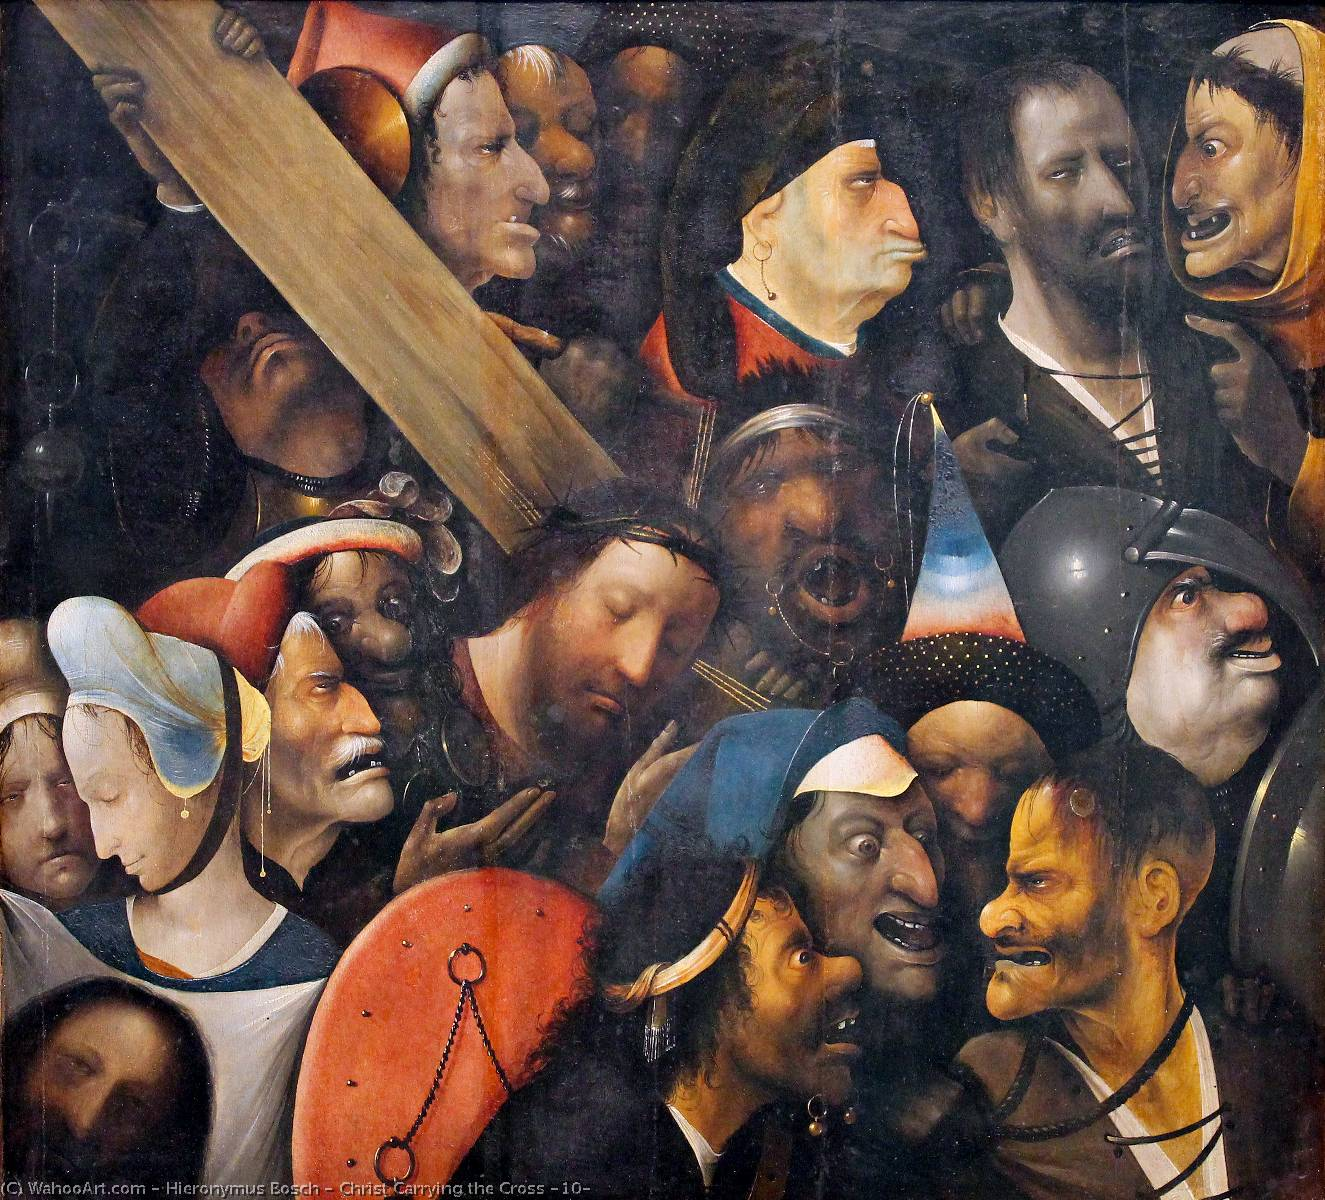 Christ Carrying the Cross (10), Oil On Panel by Hieronymus Bosch (1450-1516, Netherlands)